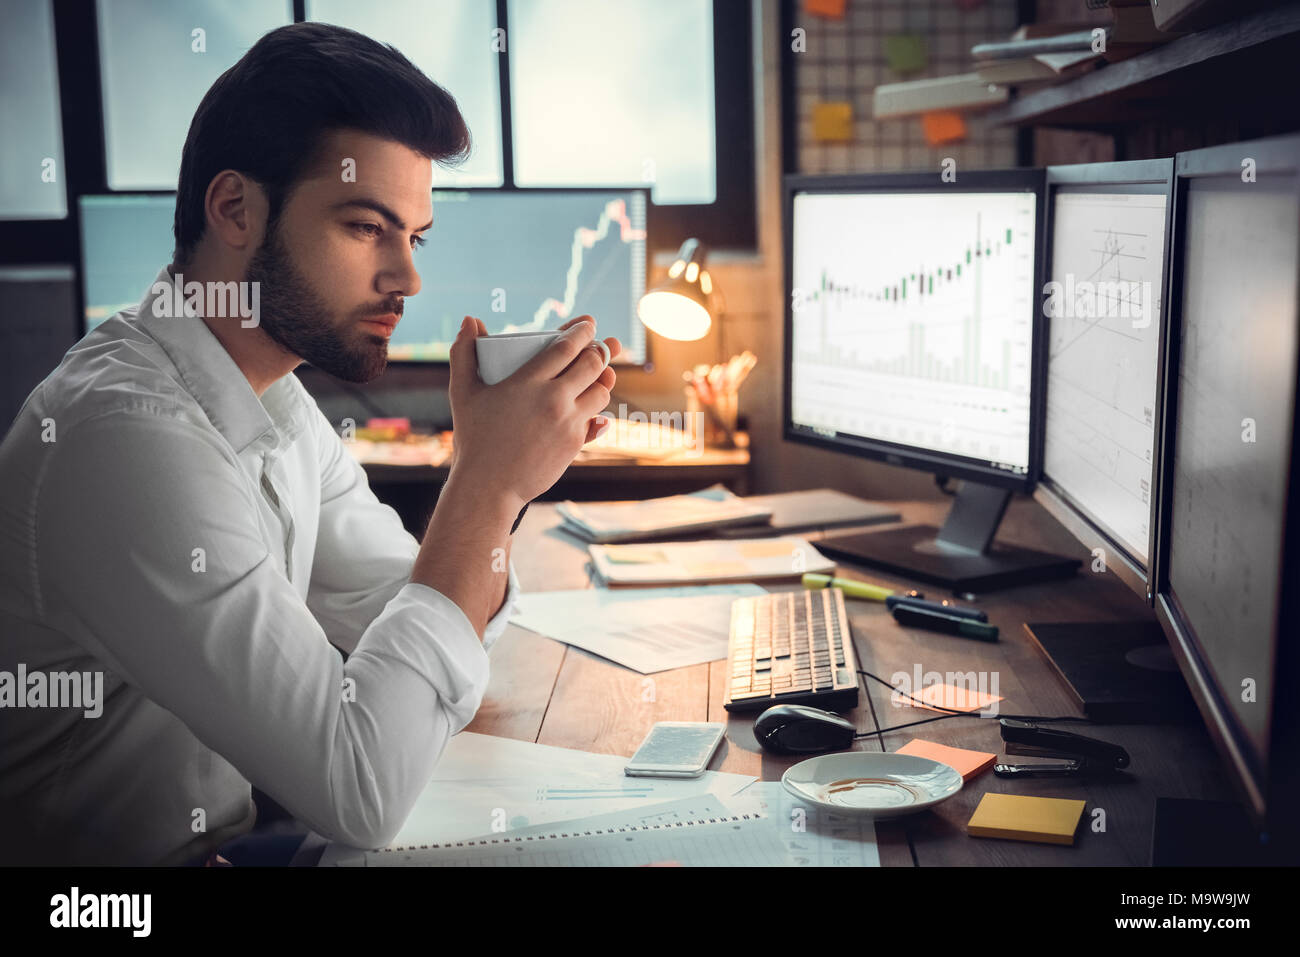 Thoughtful serious trader broker drinking coffee working overtime looking at computer monitors analyzing stock trading market graphs, overwork, lack o - Stock Image